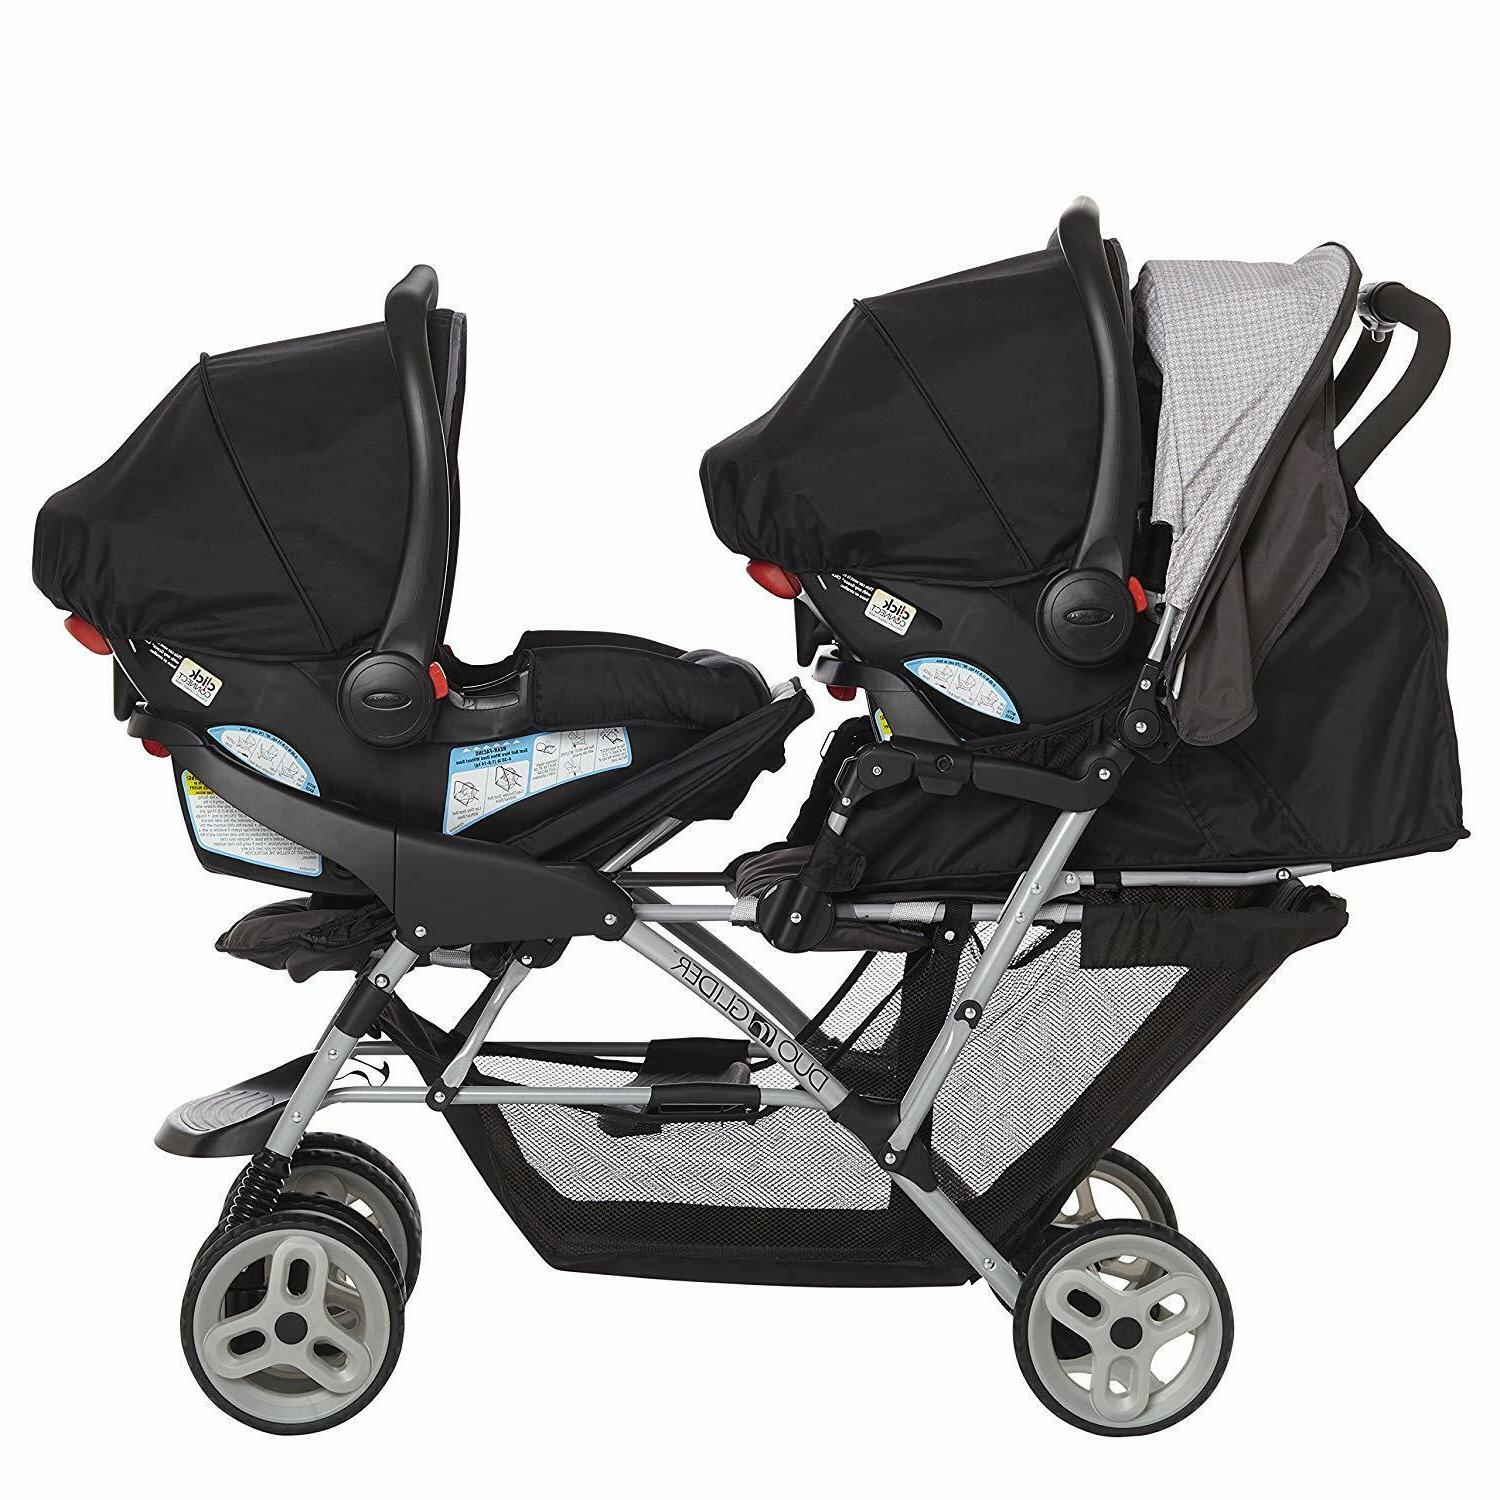 Graco Double with Tandem